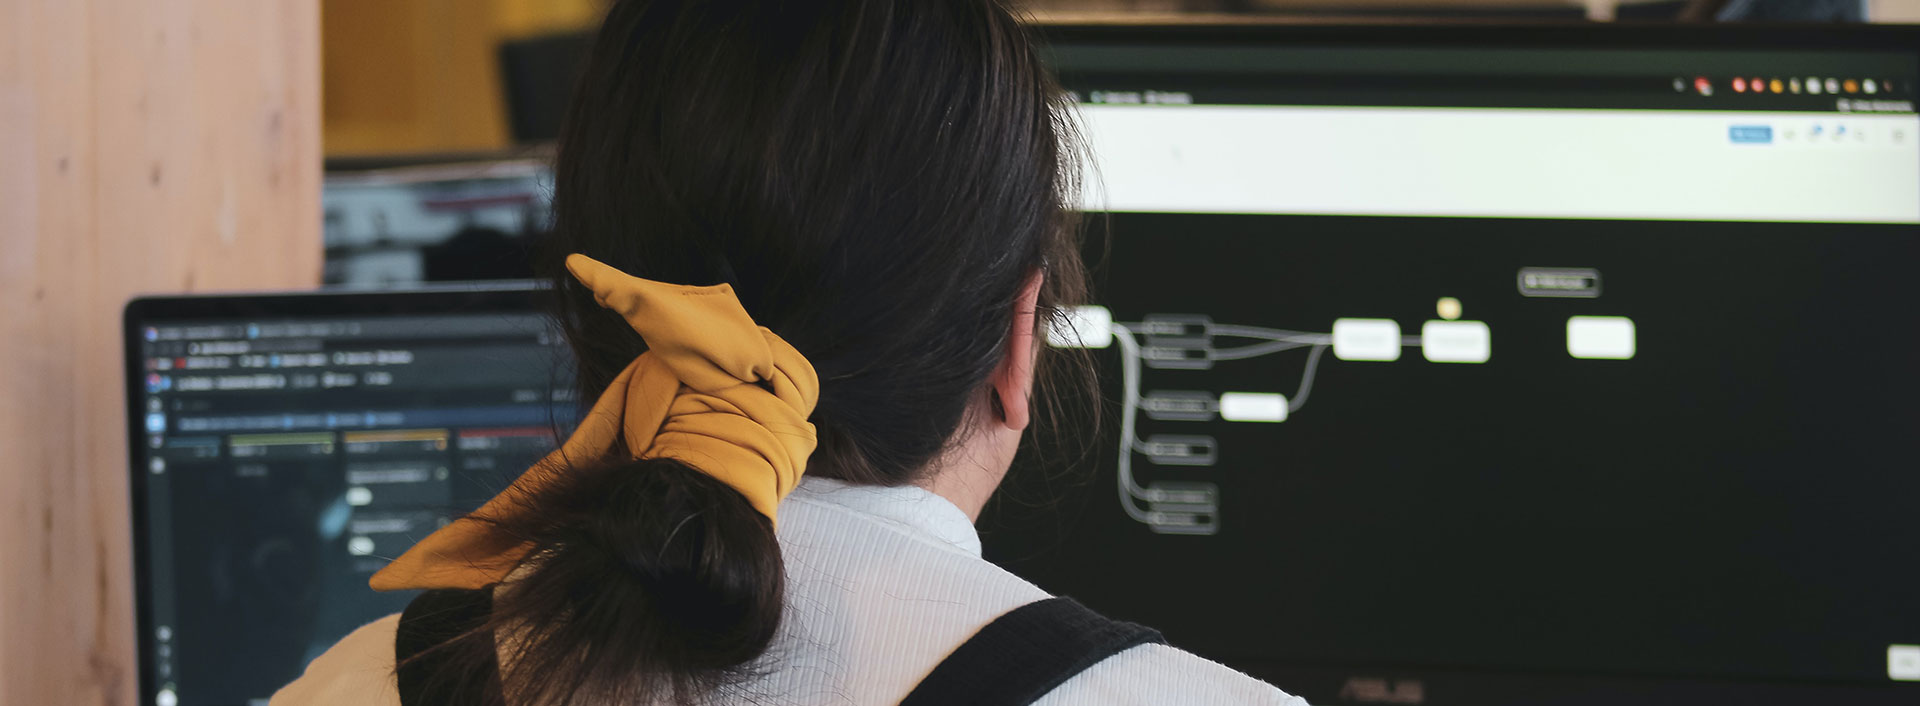 Photo of a woman looking at a flow chart on a computer screen.